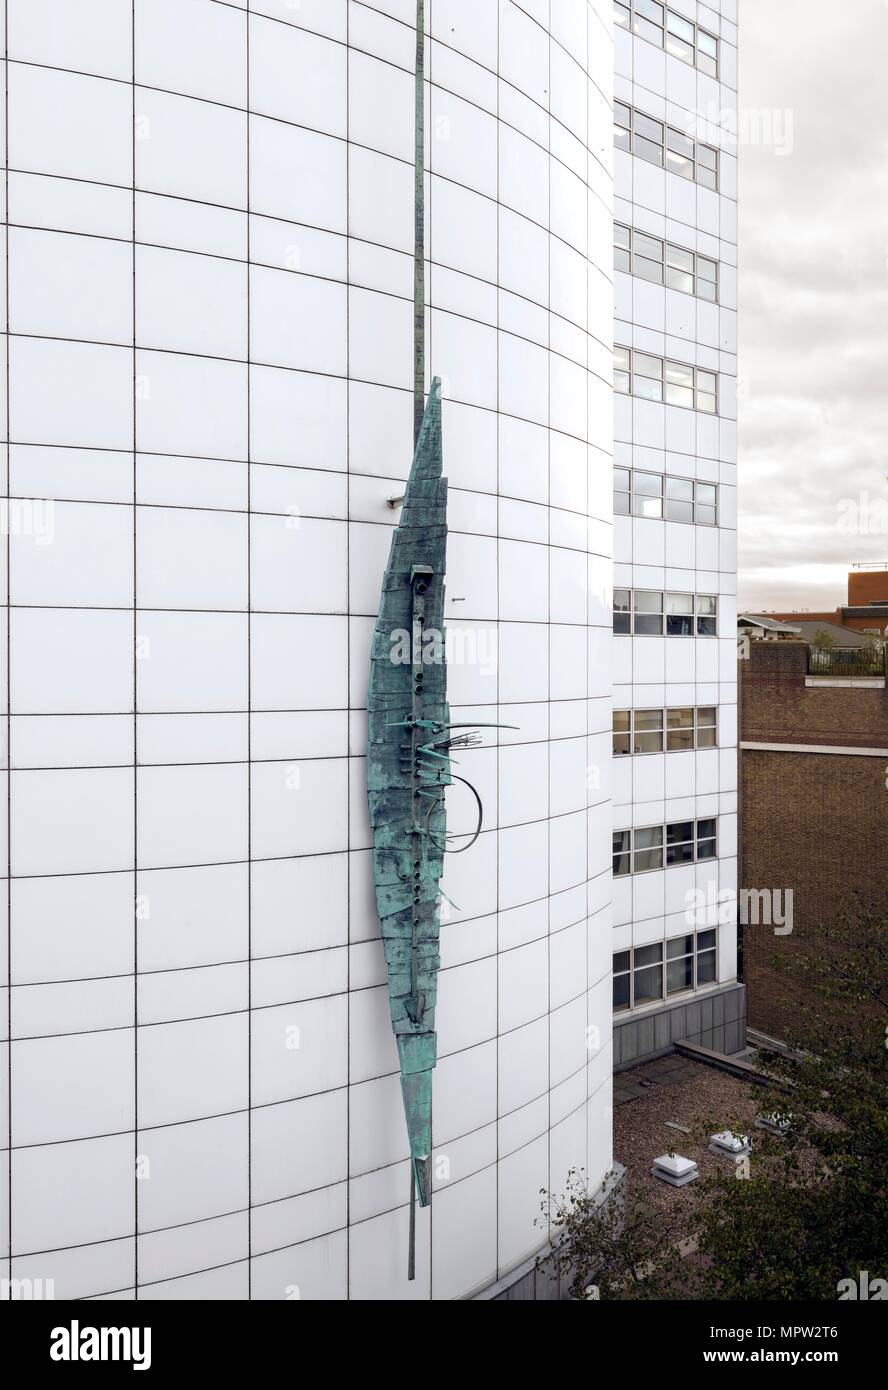 'Spirit of Electricity', sculpture by Geoffrey Clarke, Orion House, Westminster, London, 2015. Artist: Chris Redgrave. Stock Photo